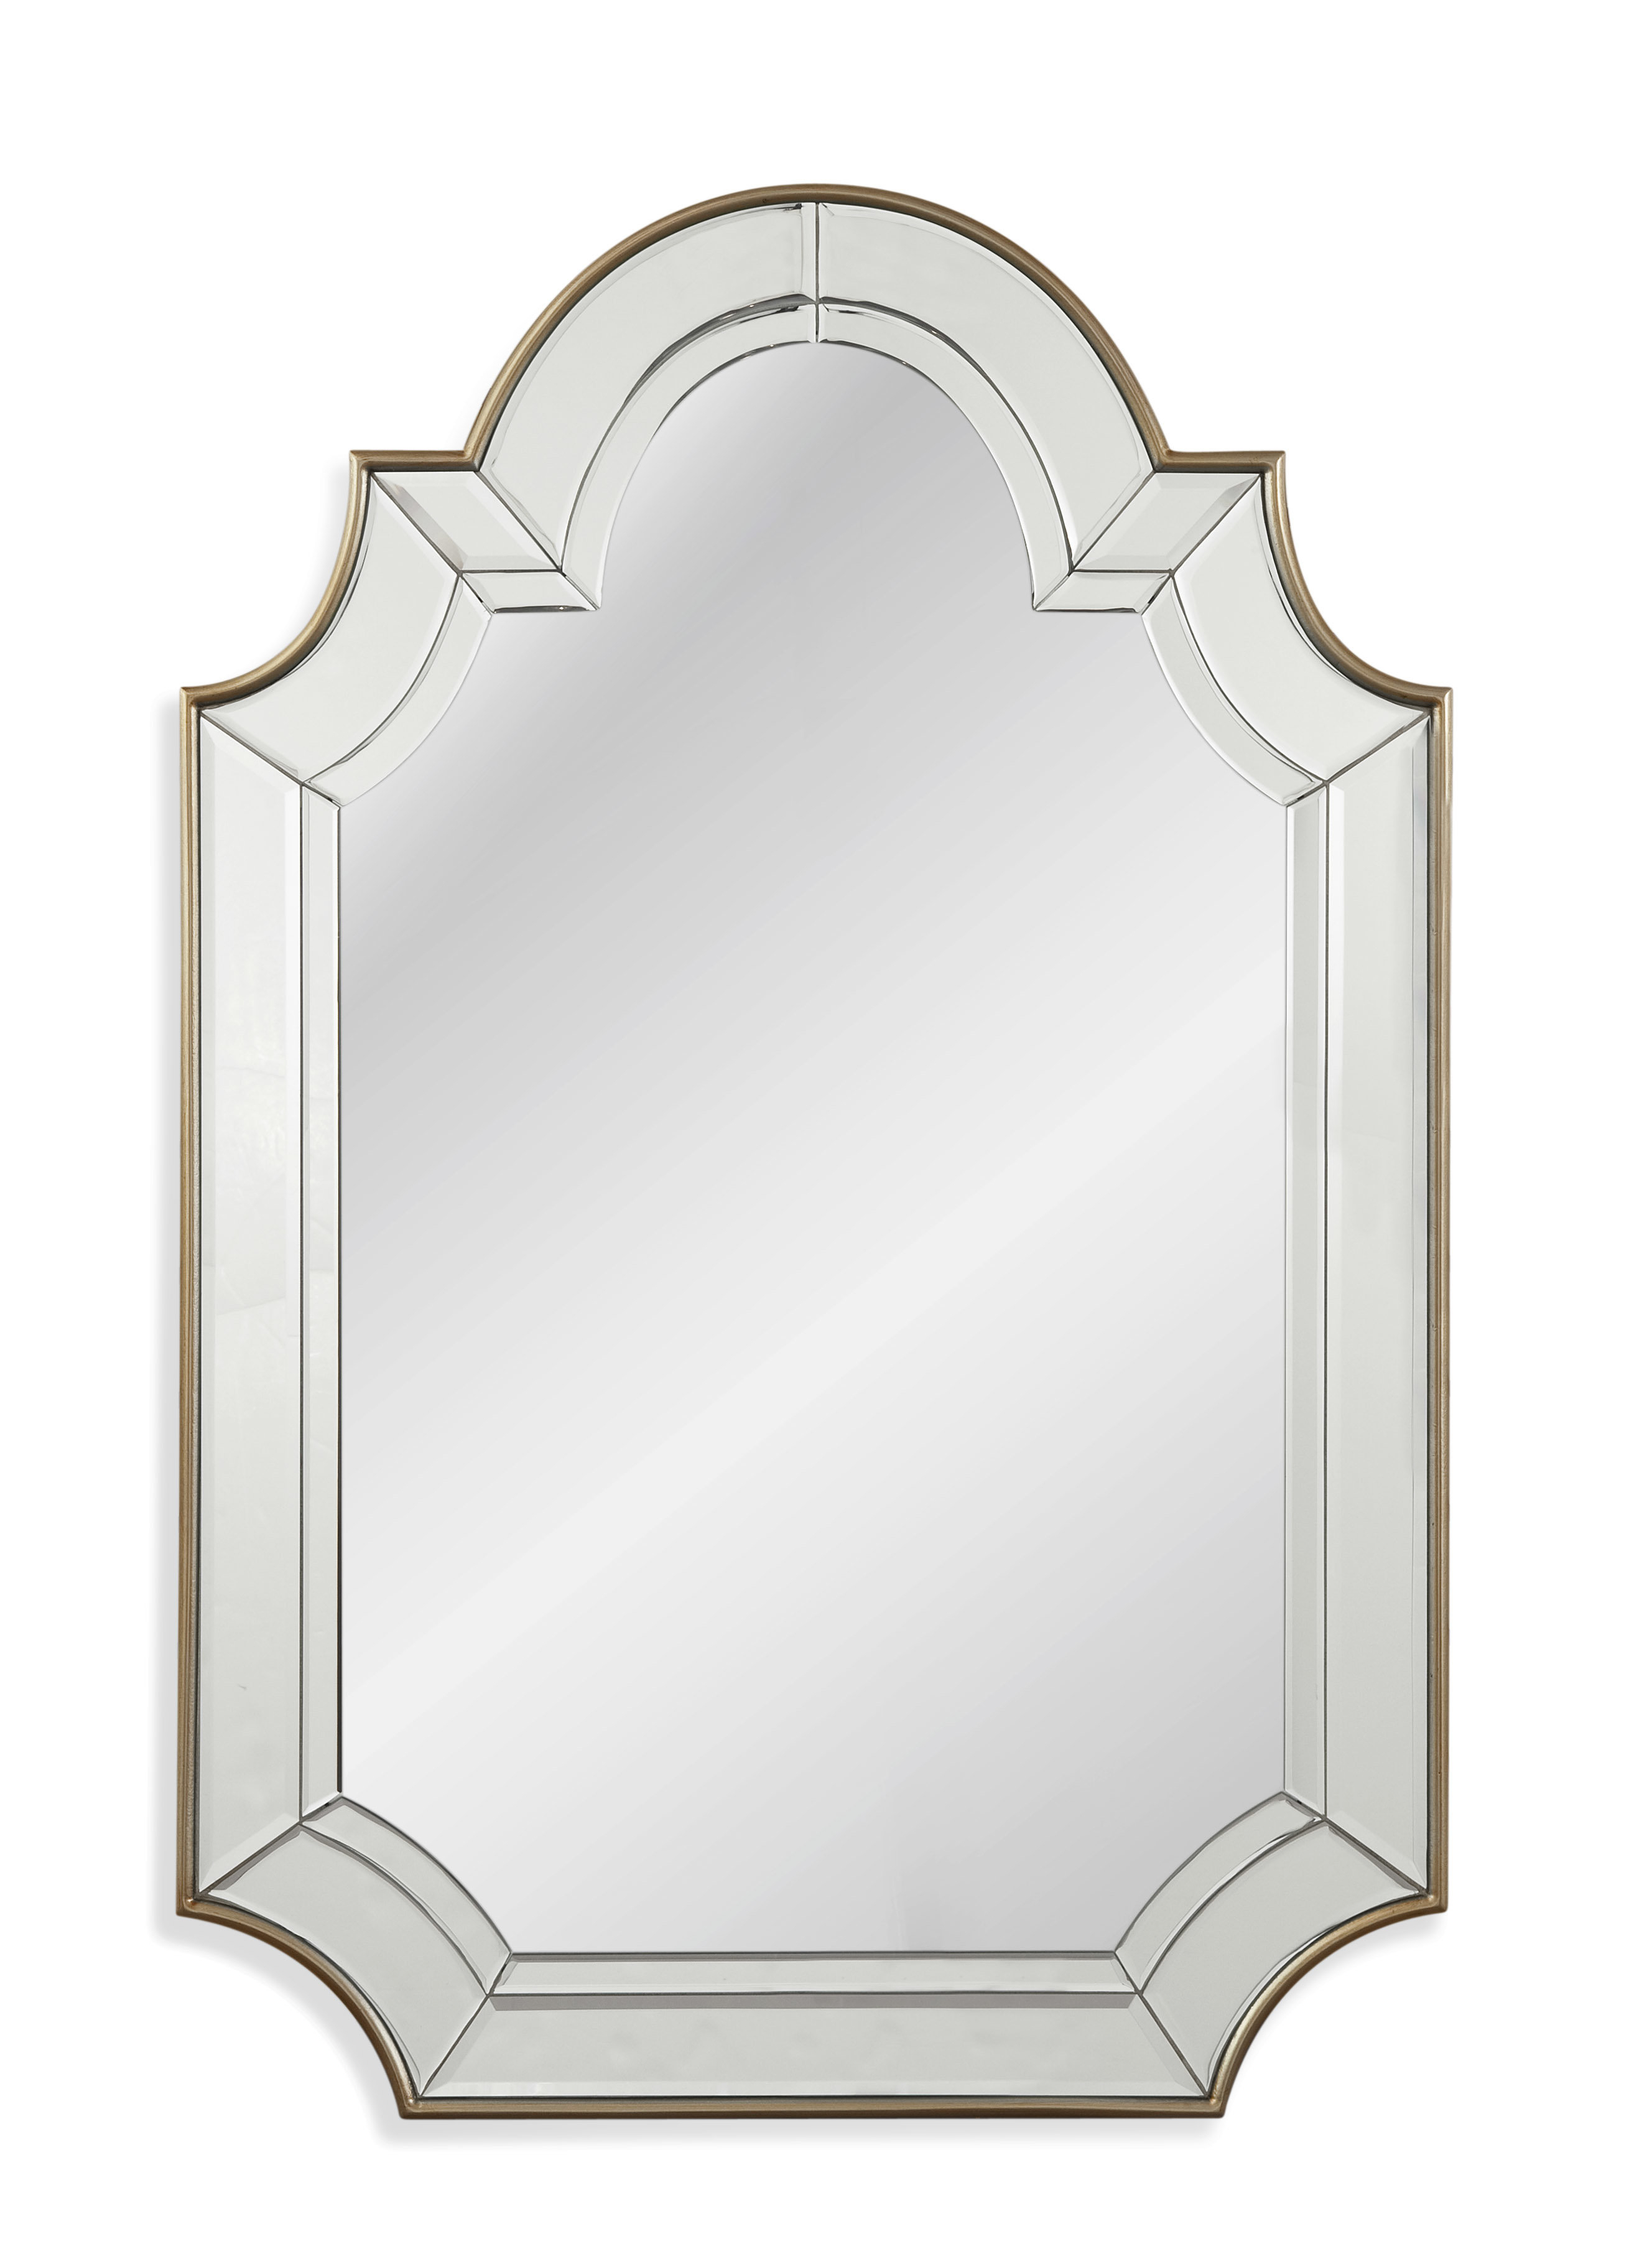 Arch/crowned Top Champagne Wall Mirror Intended For Dariel Tall Arched Scalloped Wall Mirrors (View 17 of 20)